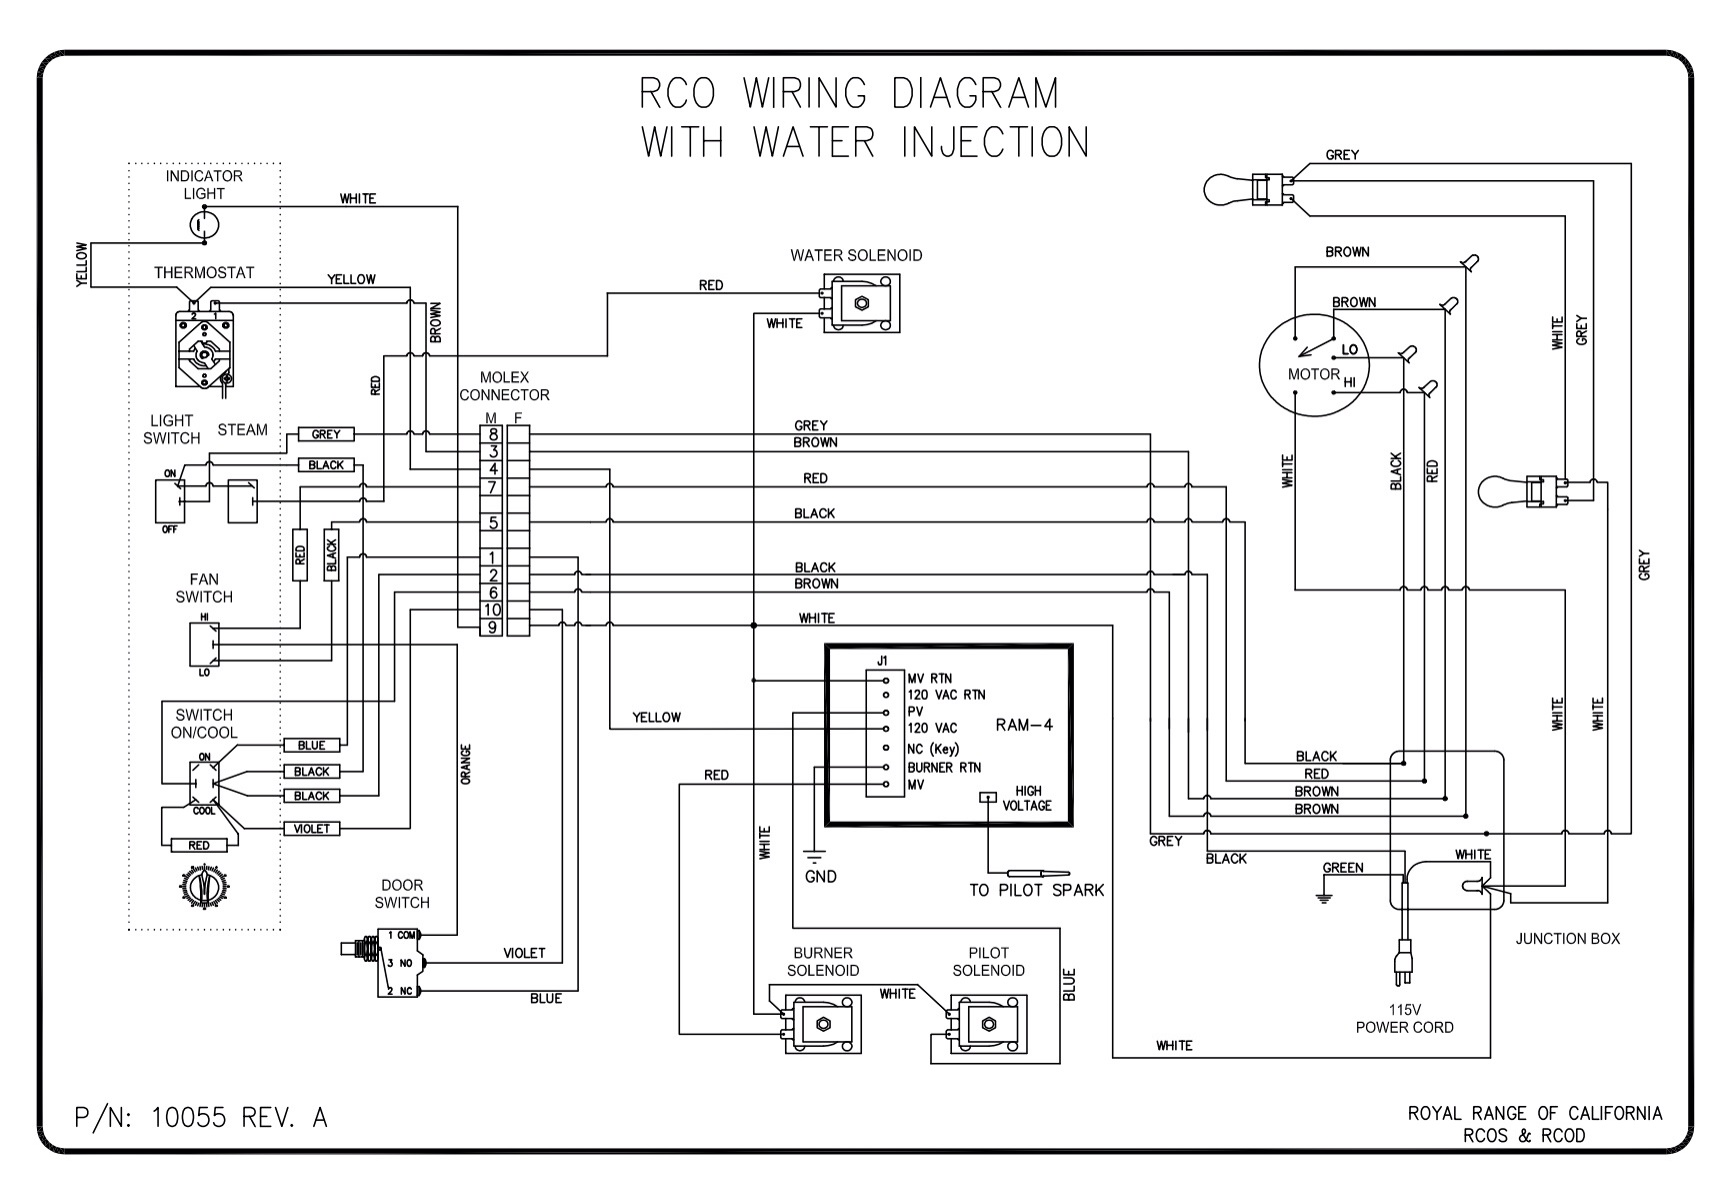 wiring diagrams royal range of californiarco with water injection